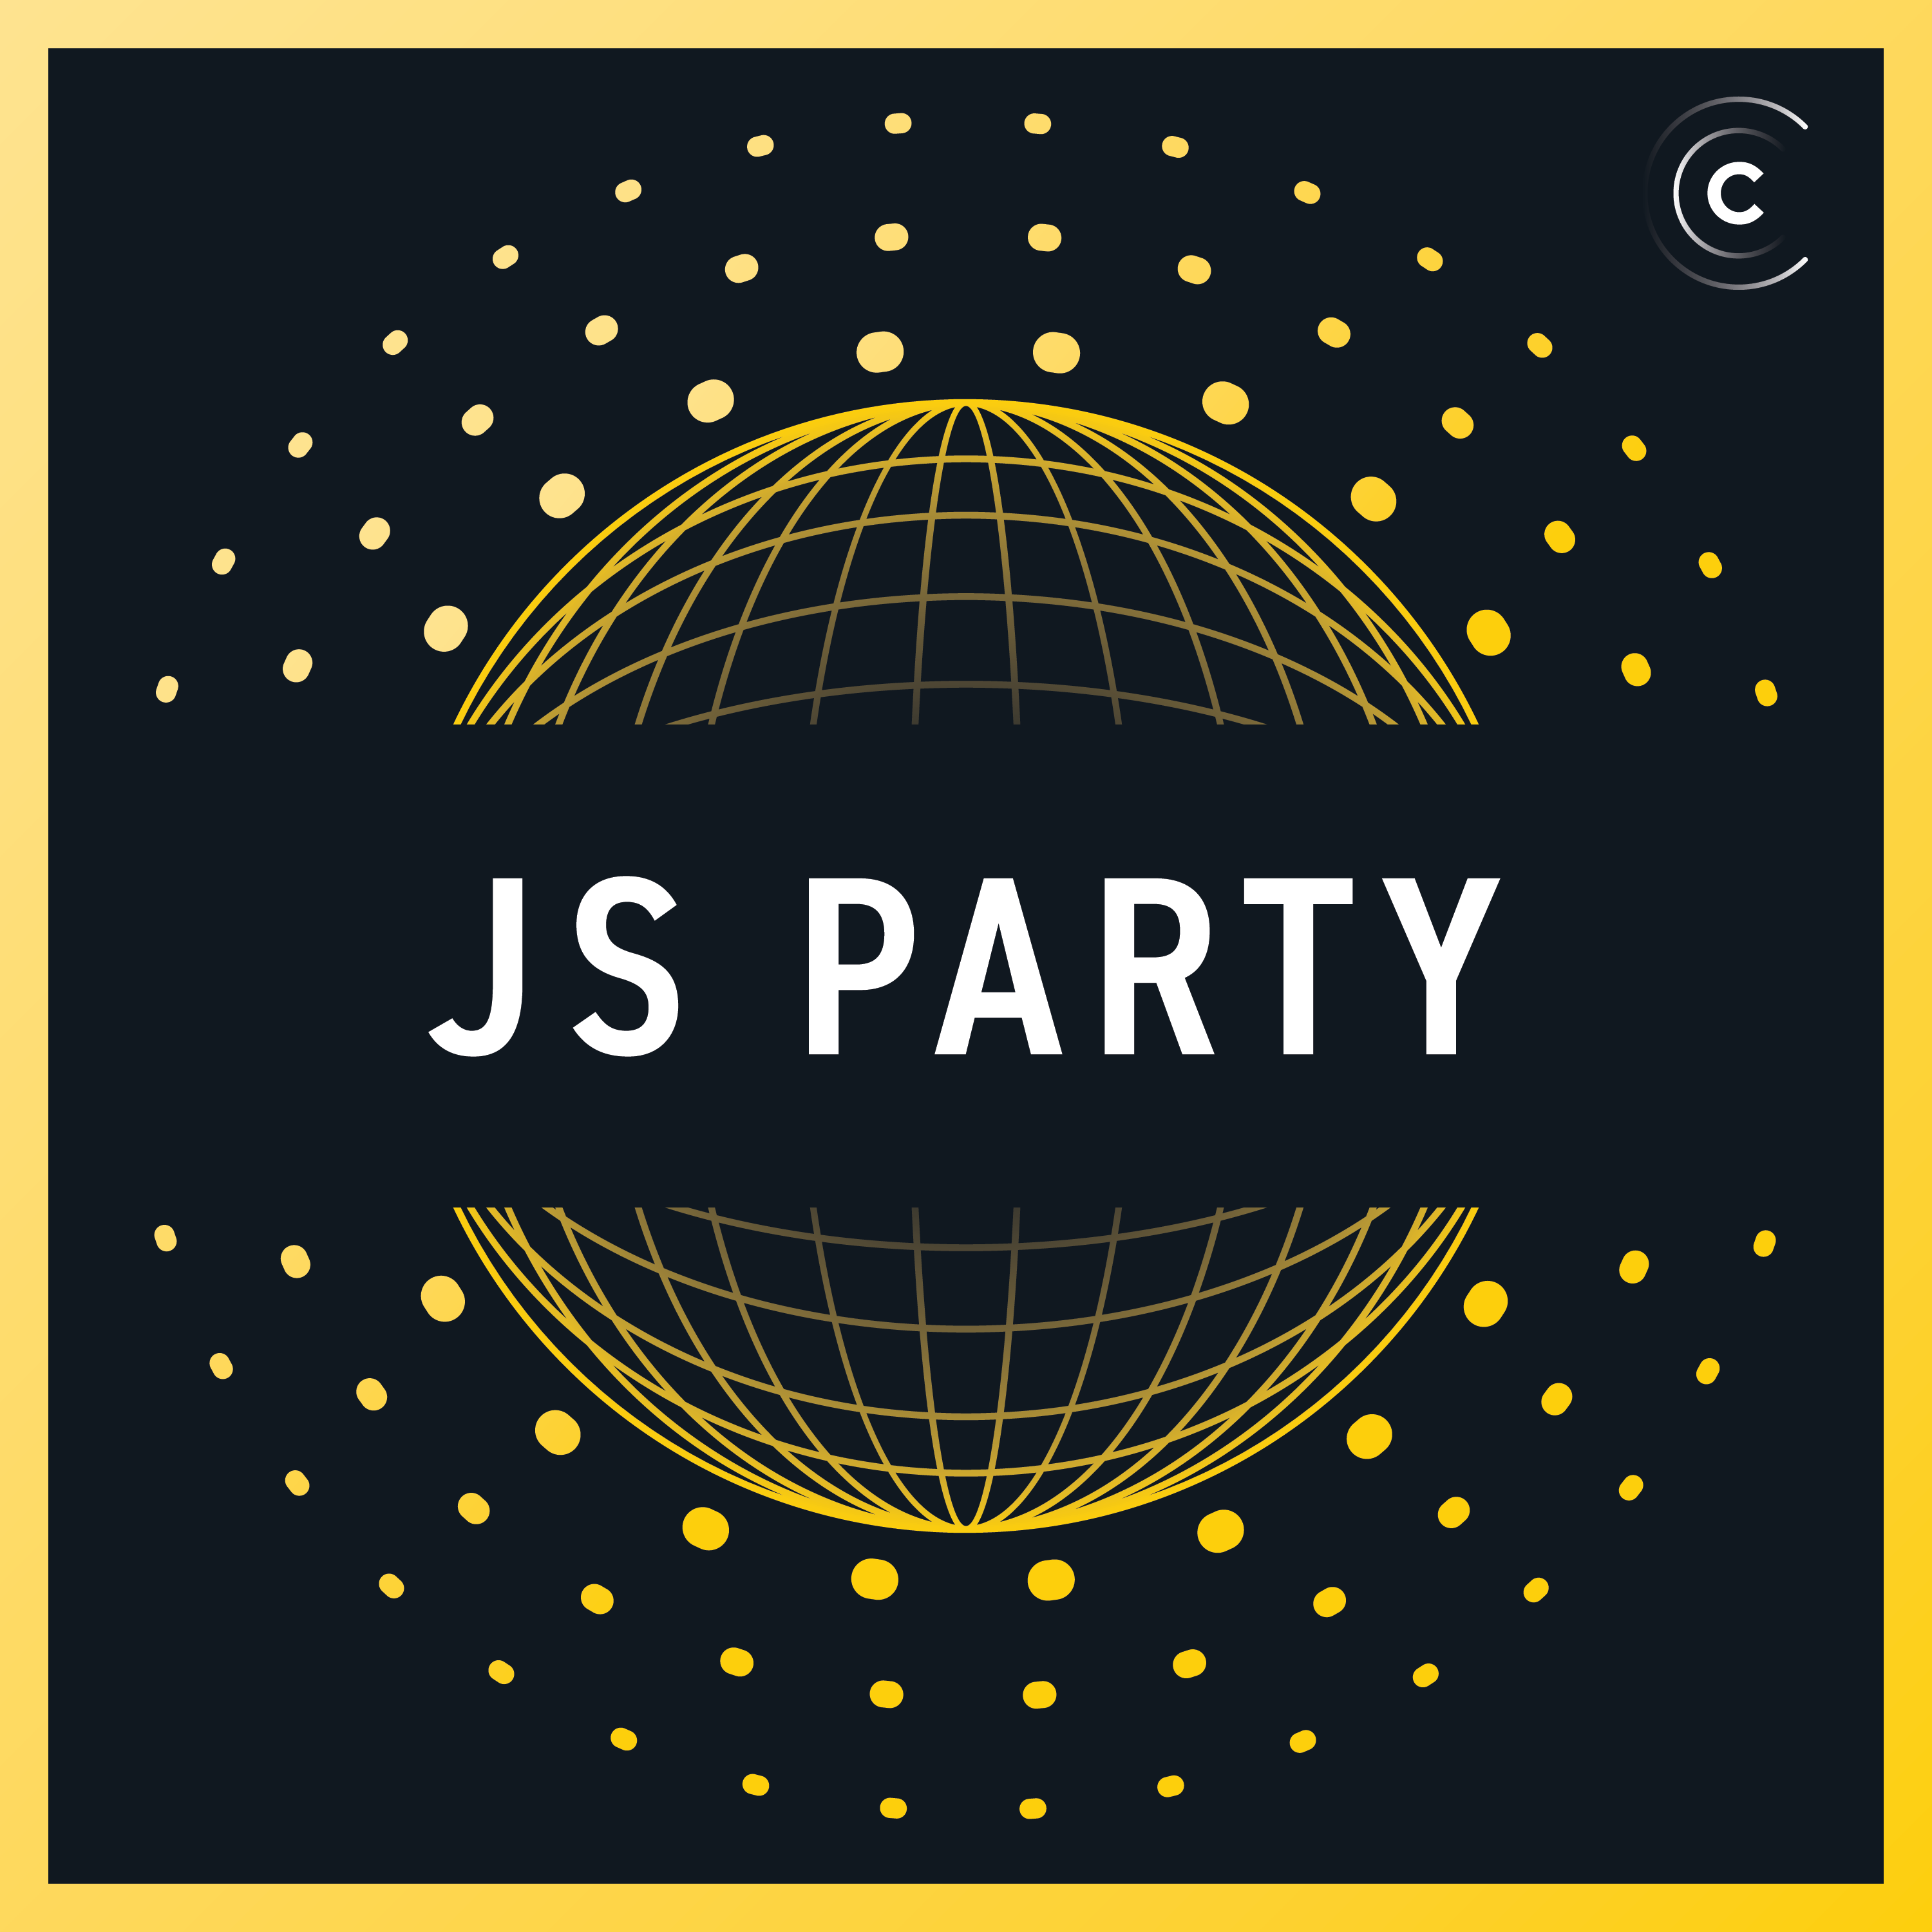 JS Party #81: The story of Konami-JS ☝️ ☝️ 👇 👇 👈 👉 👈 👉 B A